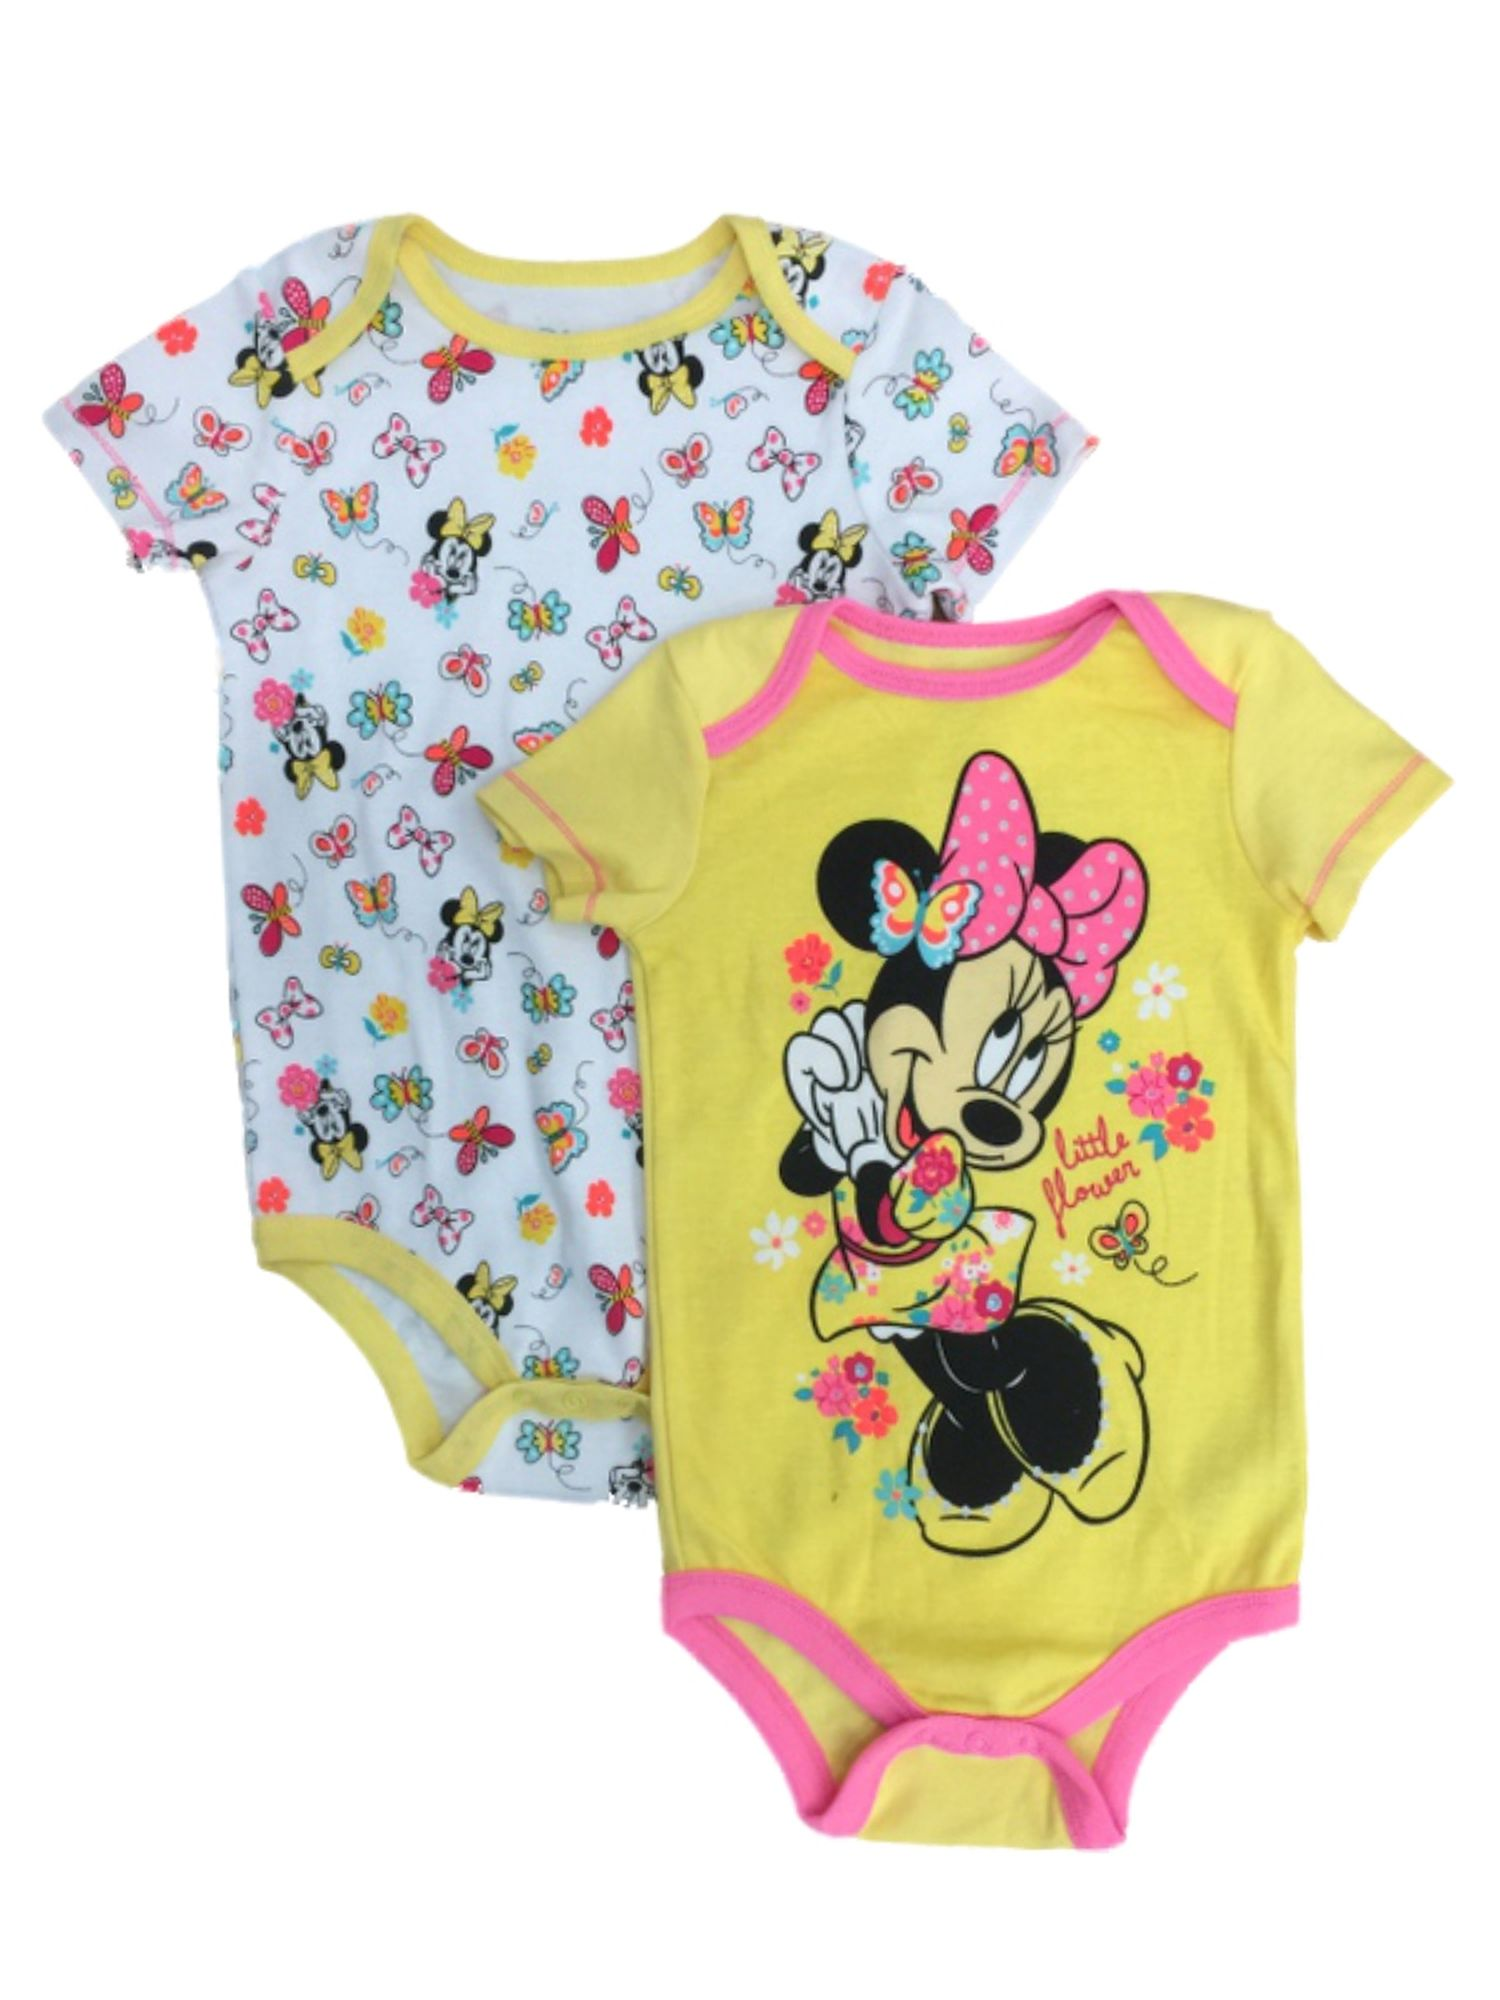 Minnie Mouse Onsie; Disney Onsie; baby; baby clothing; unisex baby; baby gift; Mickey Mouse;